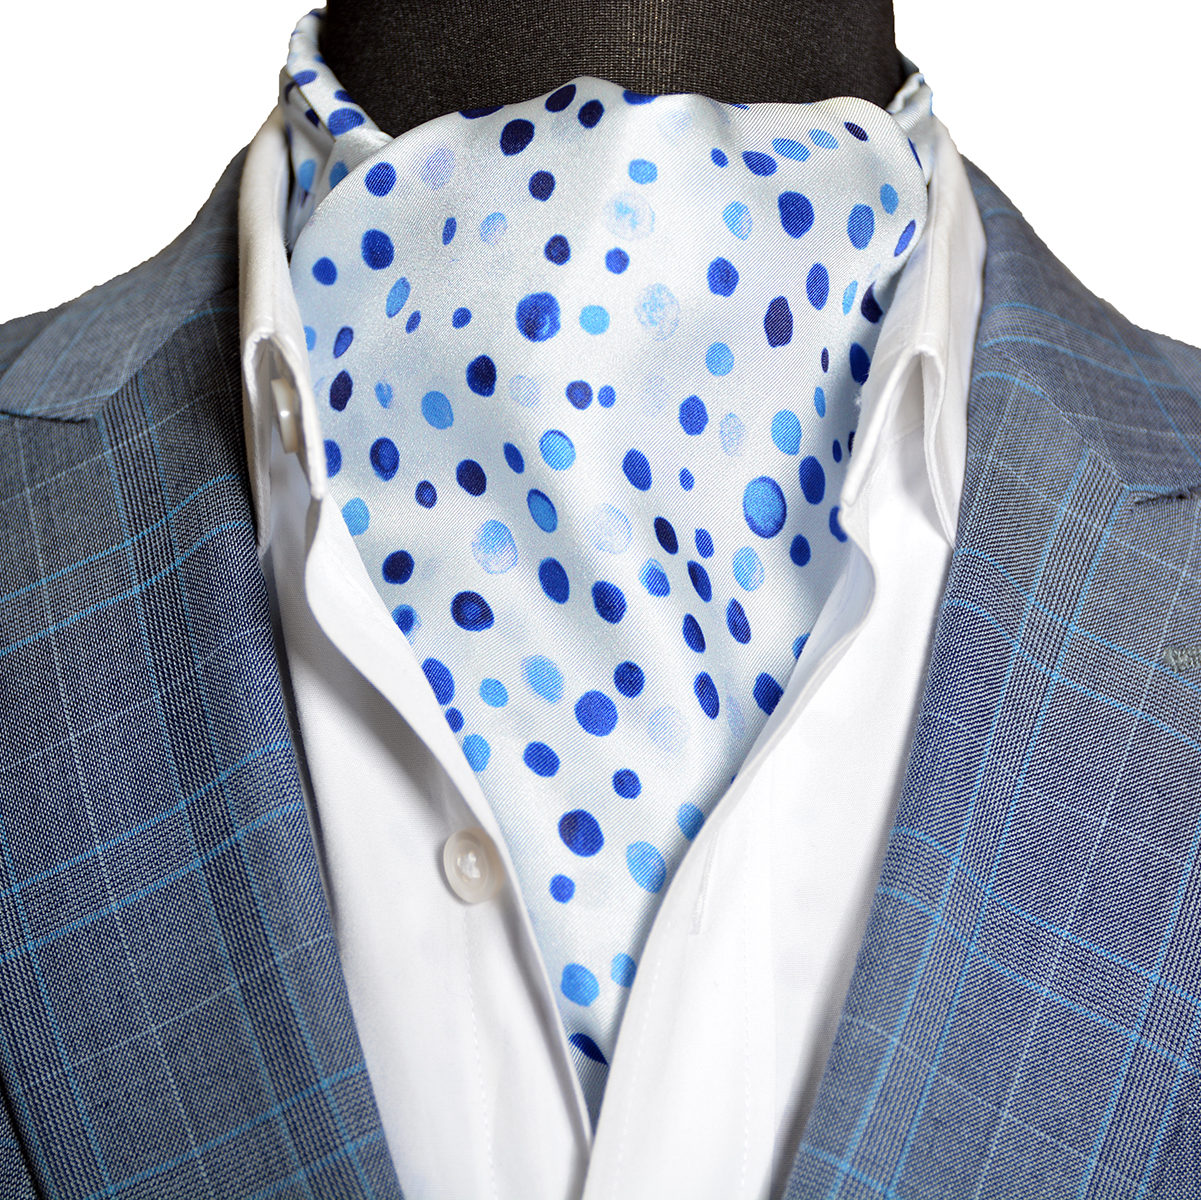 The Winter Frost Sterling Ascot Tie